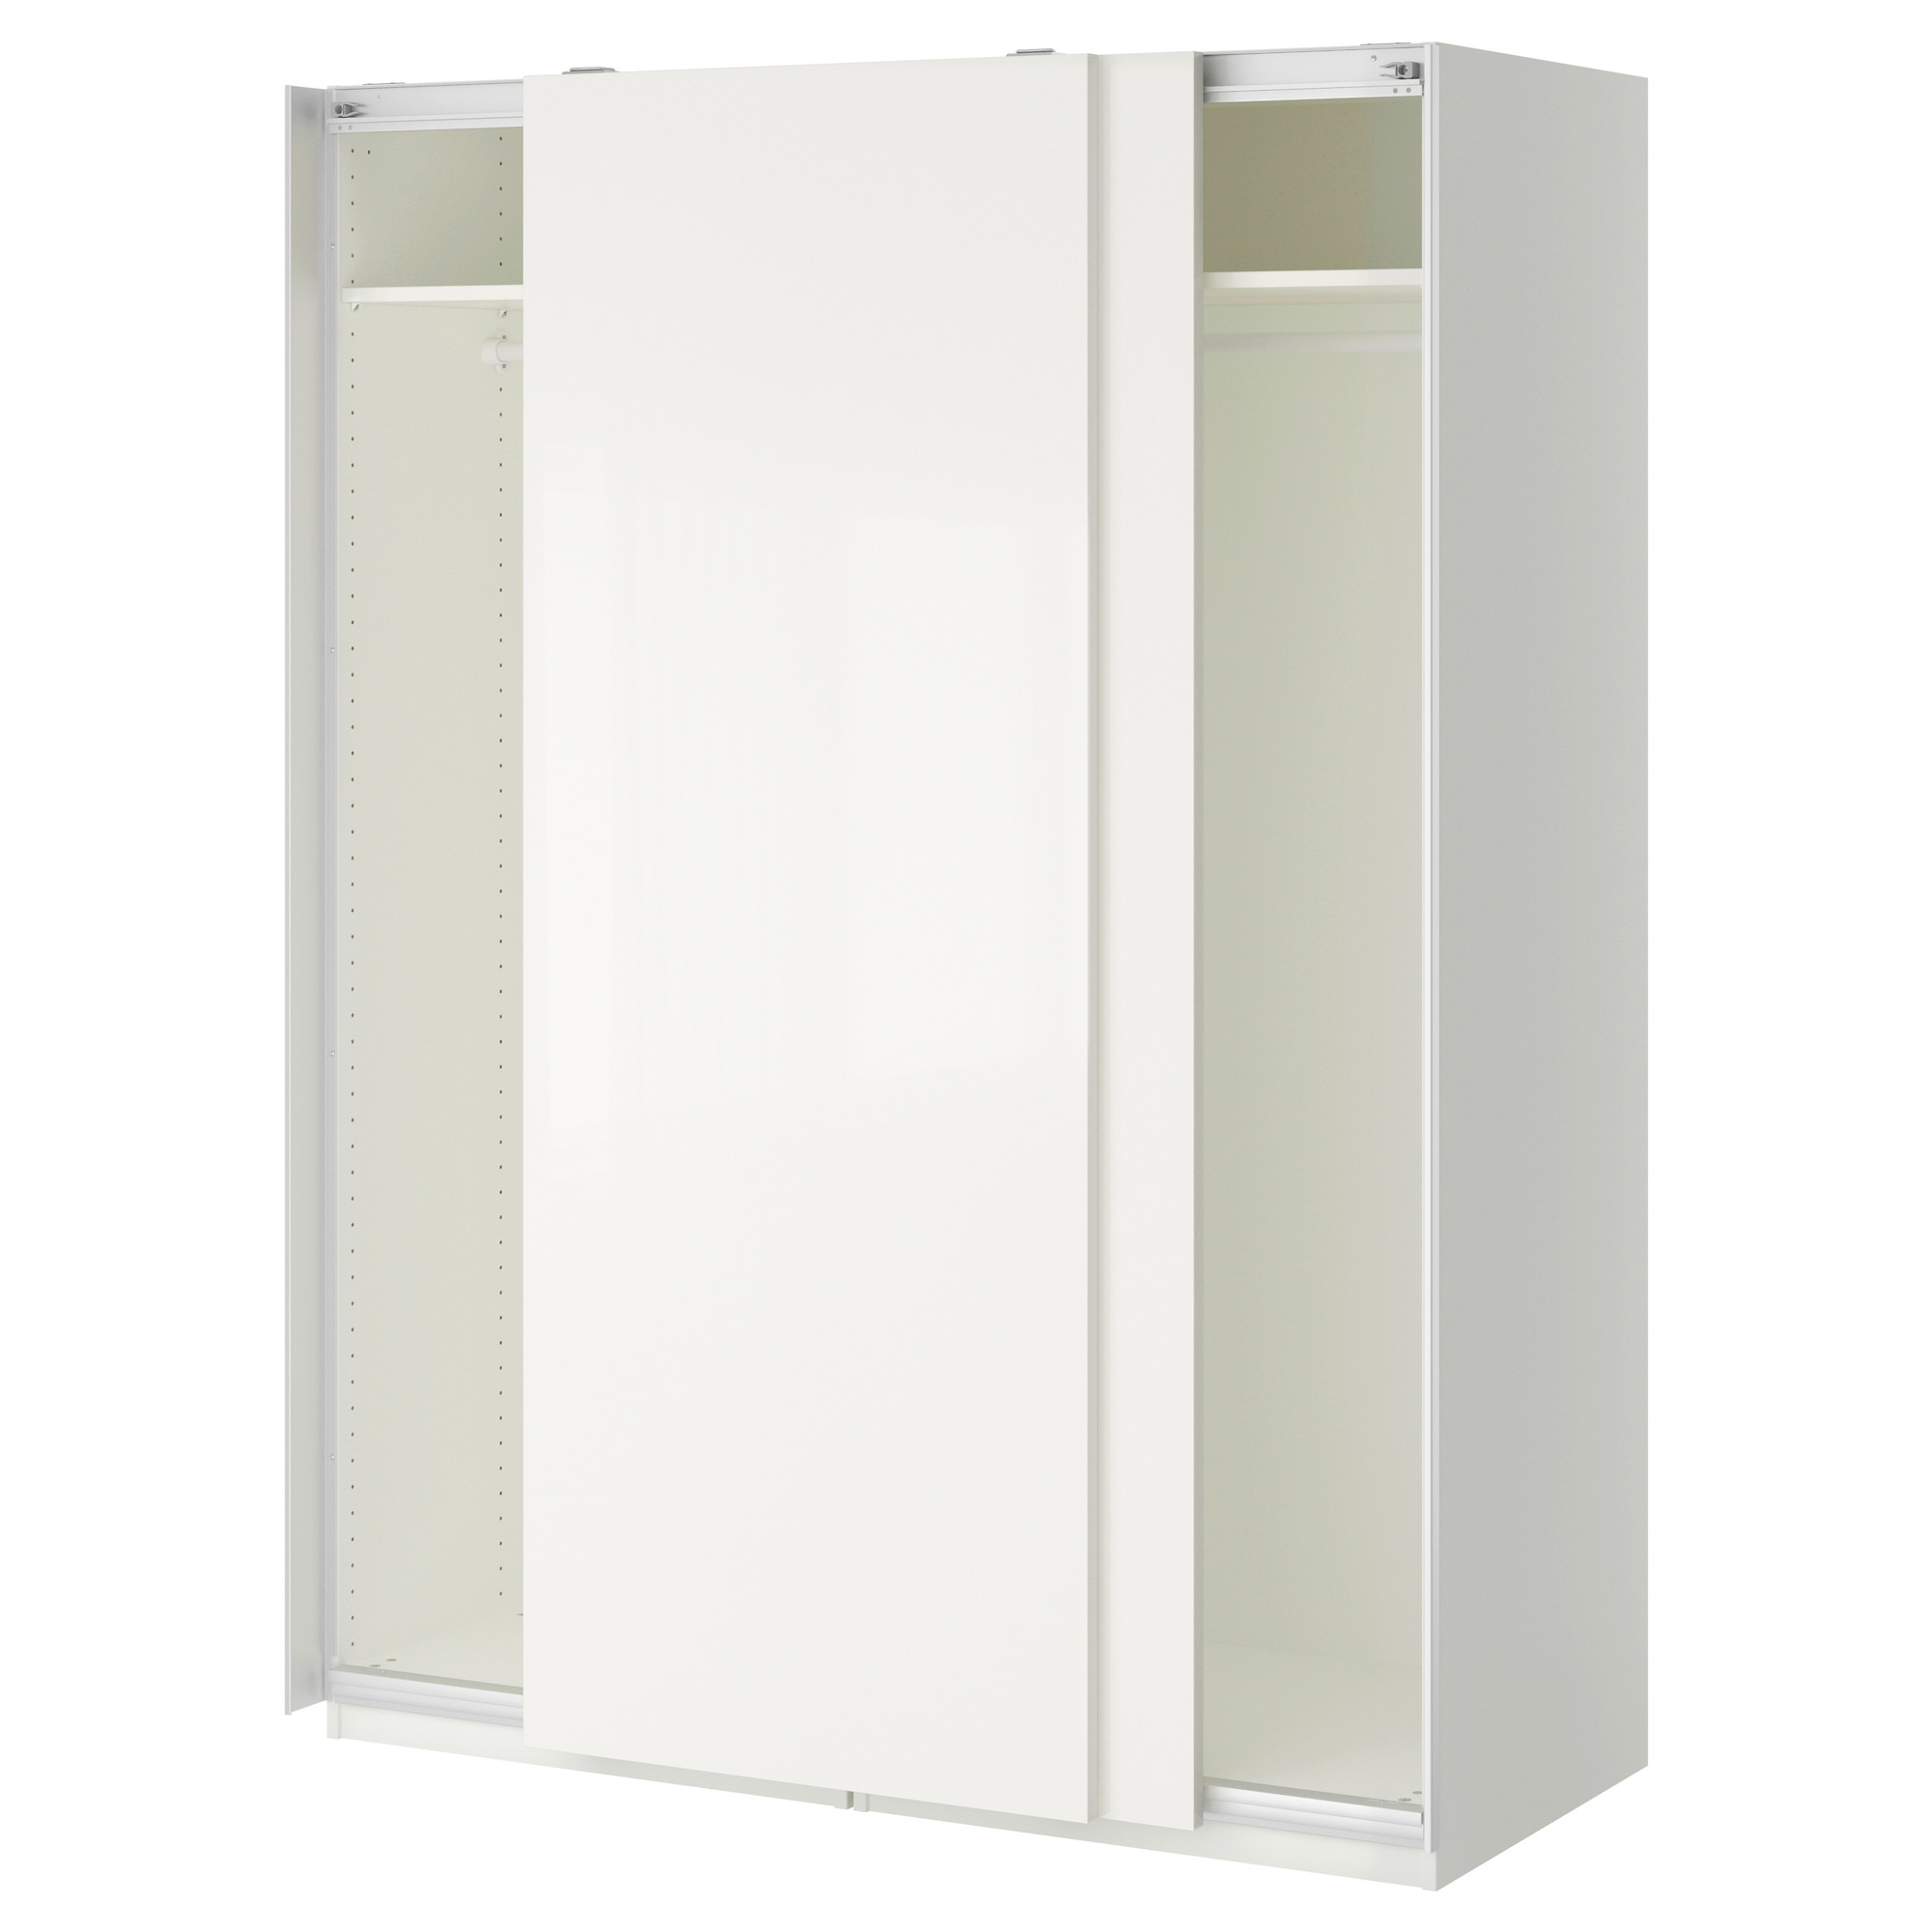 Mirrored Wardrobe Ikea | Ikea Large Wardrobe | Ikea Wardrobe